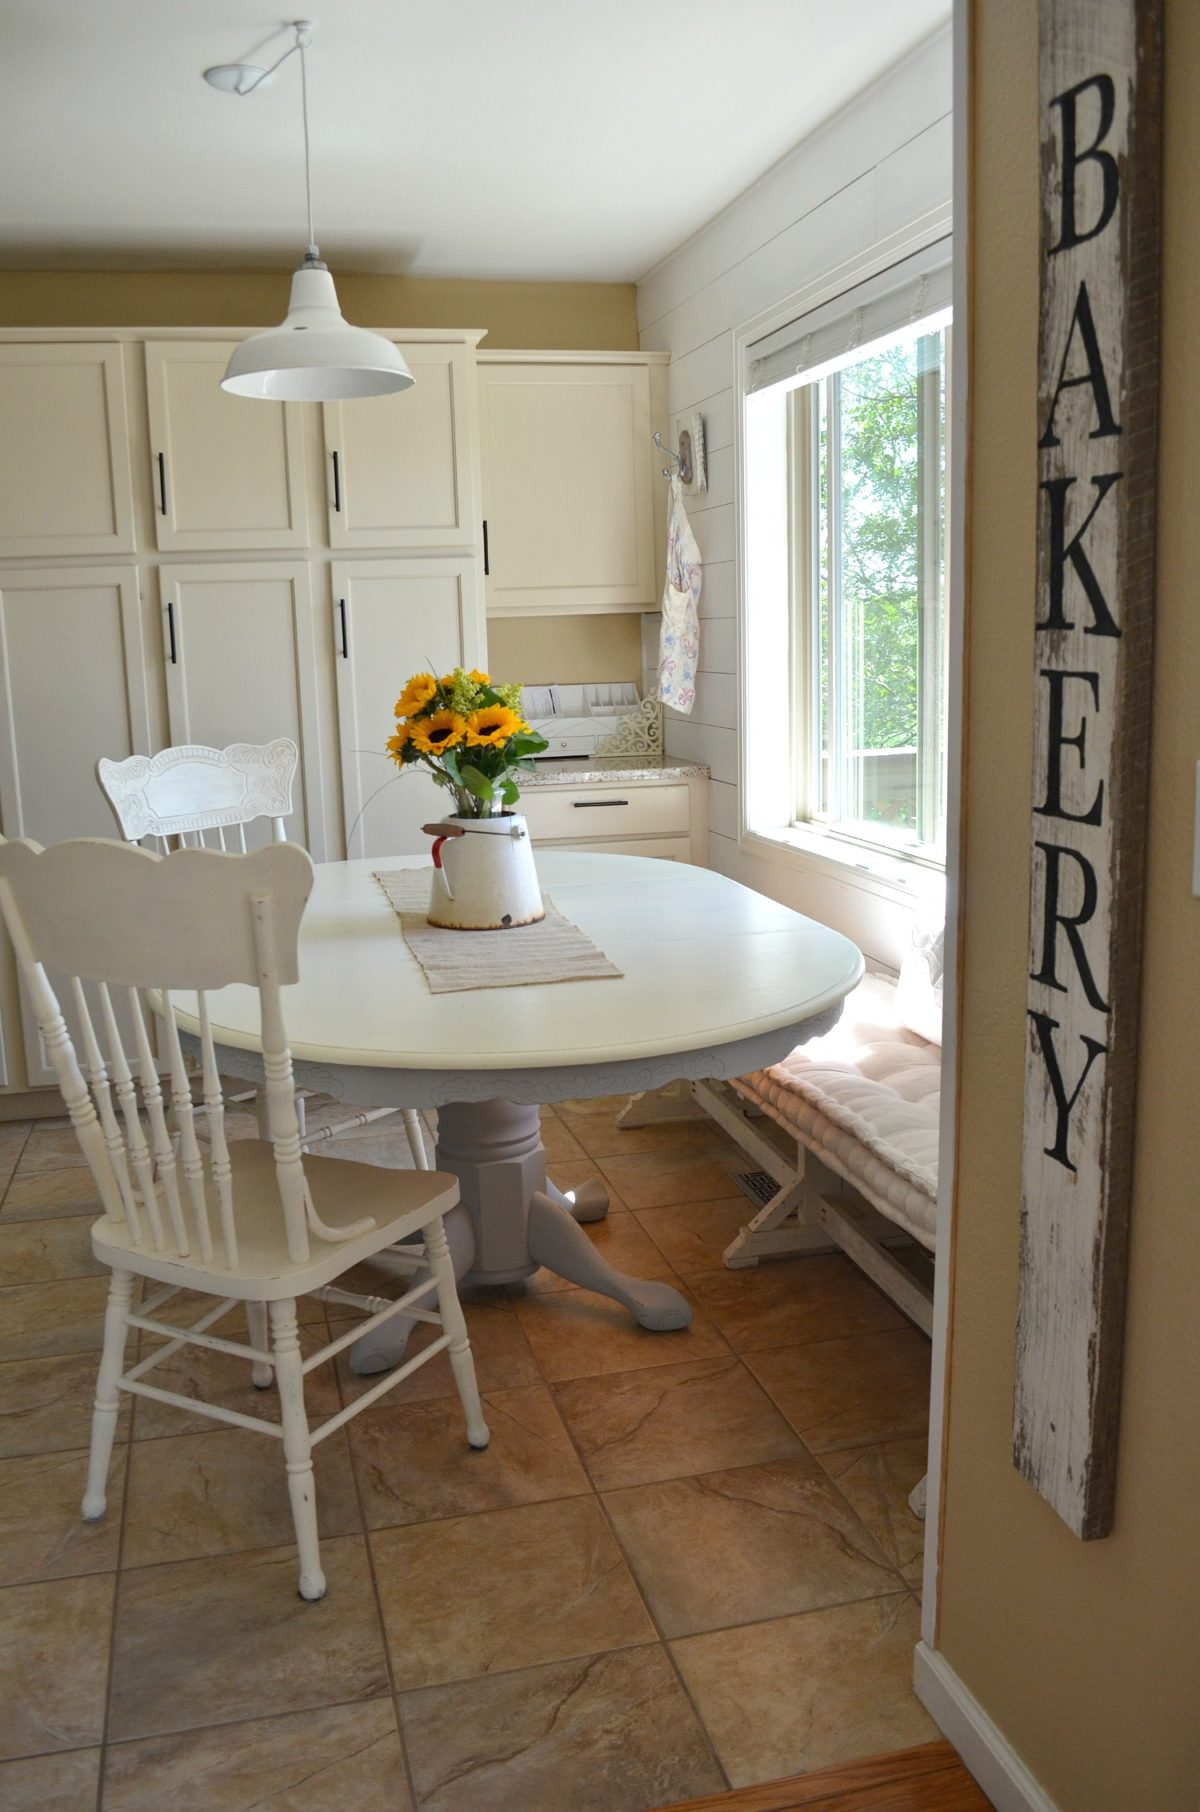 Ordinaire DIY Chalk Painted Farmhouse Style Table